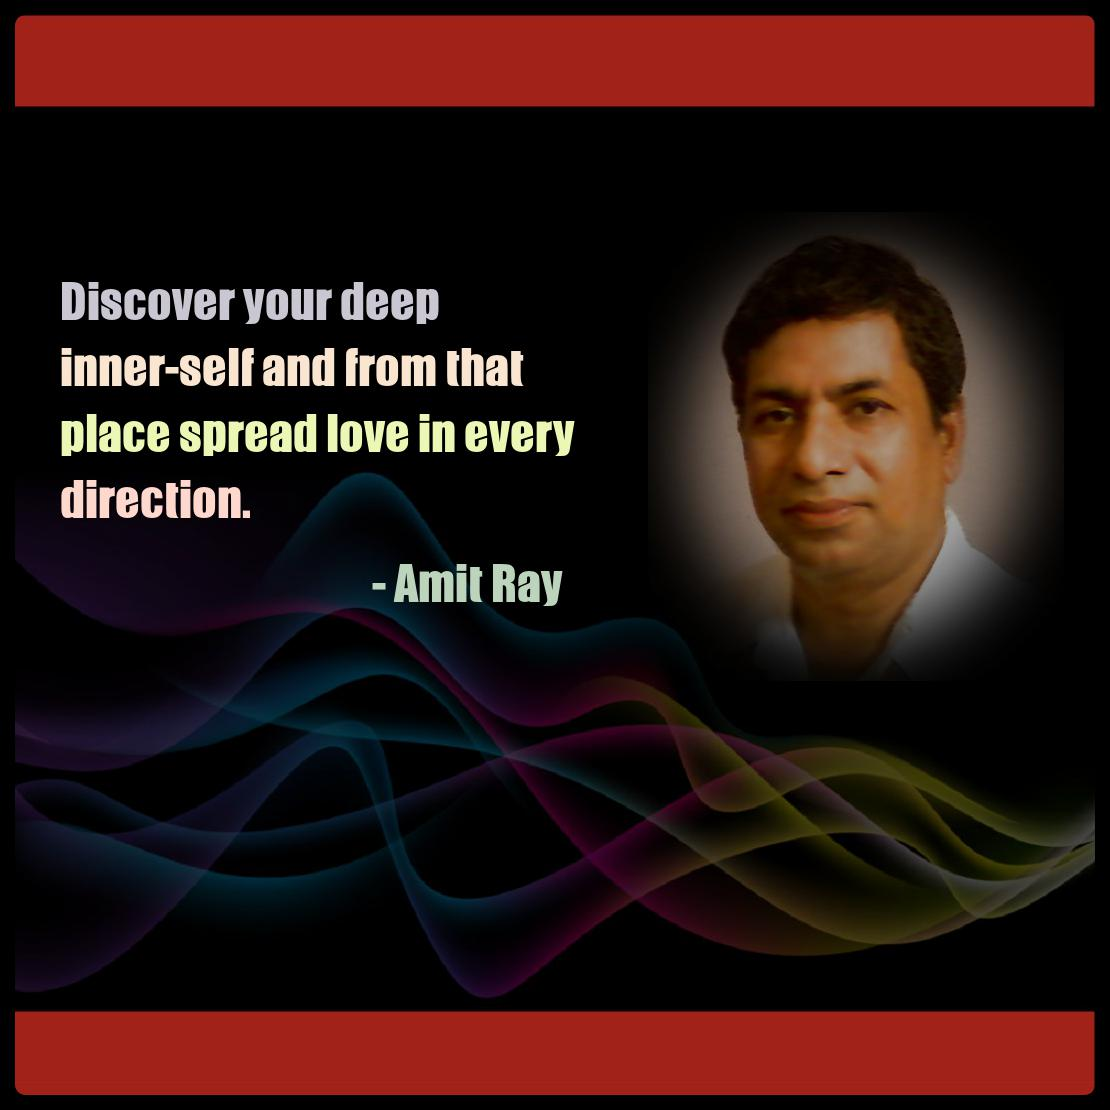 Discover your deep inner-self -- Amit Ray